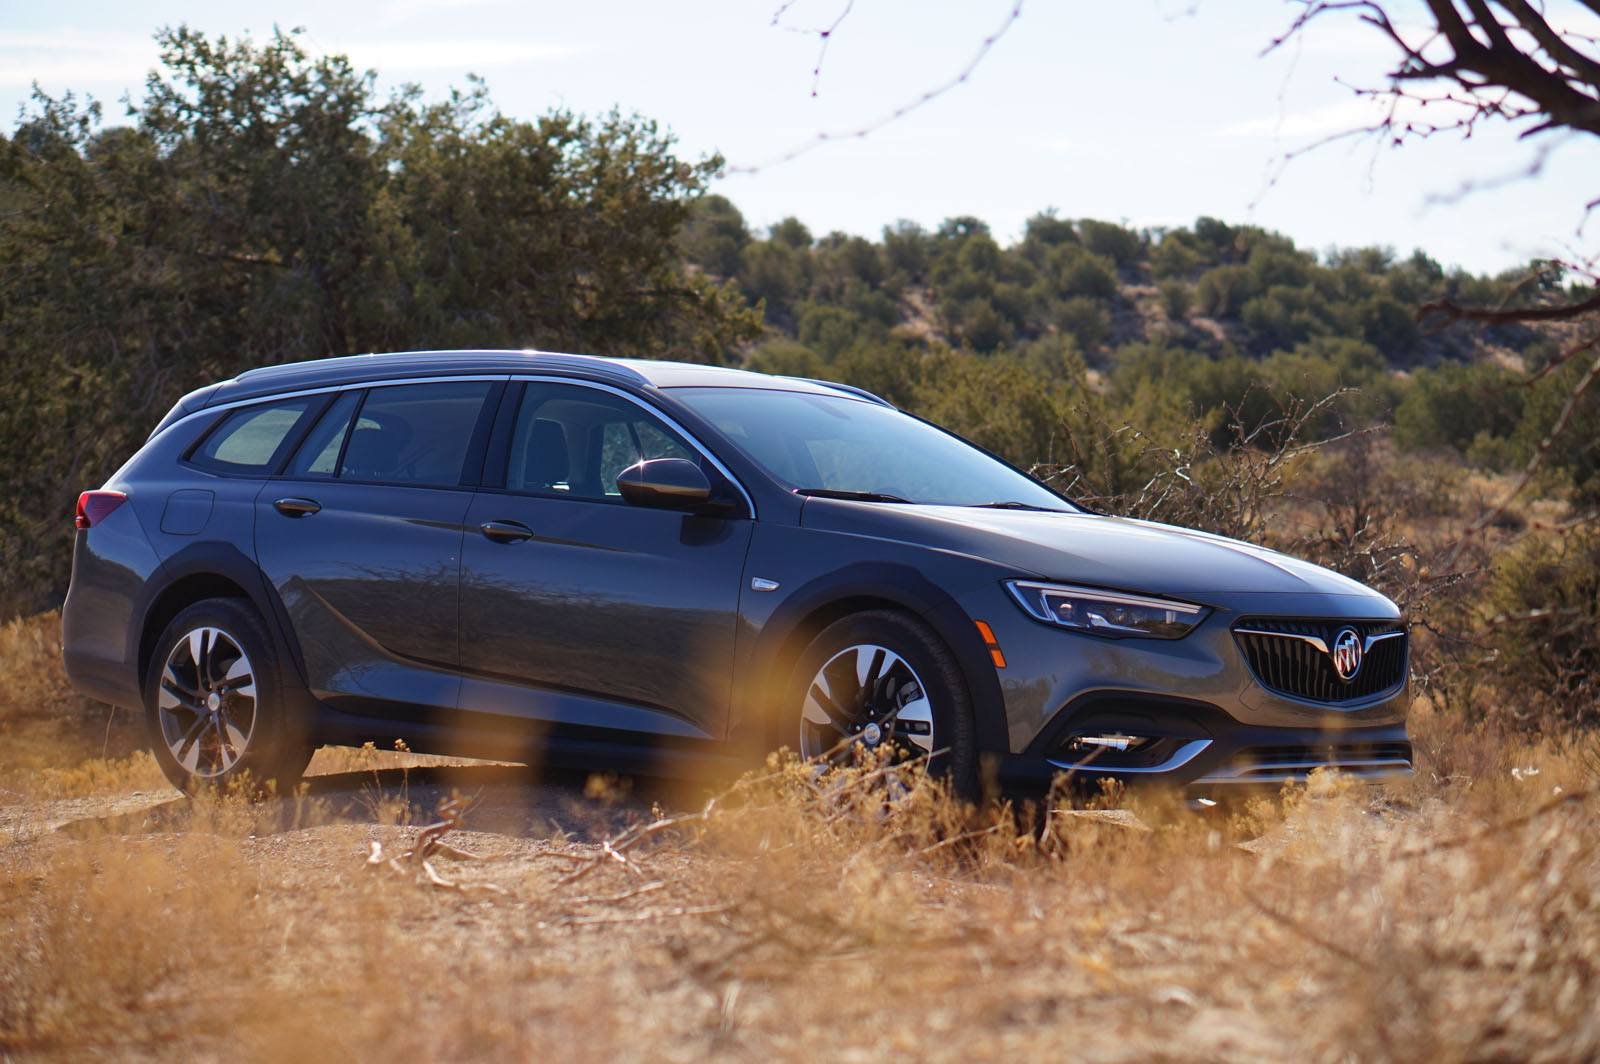 2018 Buick Regal TourX Review and First Drive - AutoGuide.com